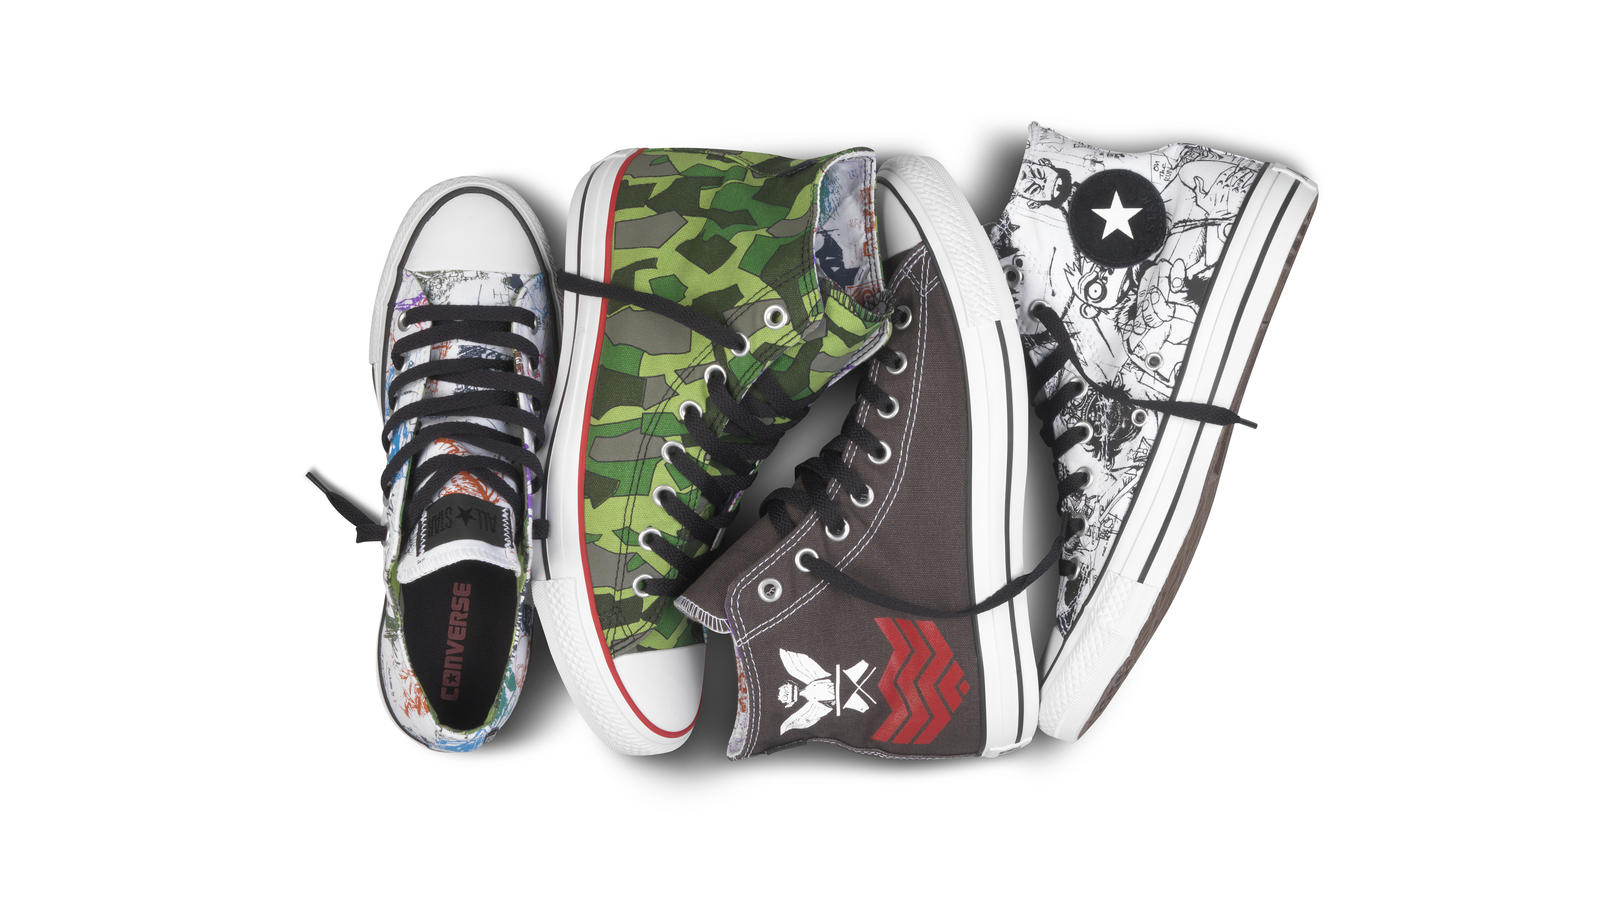 e8111e4c748c 2012 Chuck Taylor All-Stars Gorillaz Spring Collection